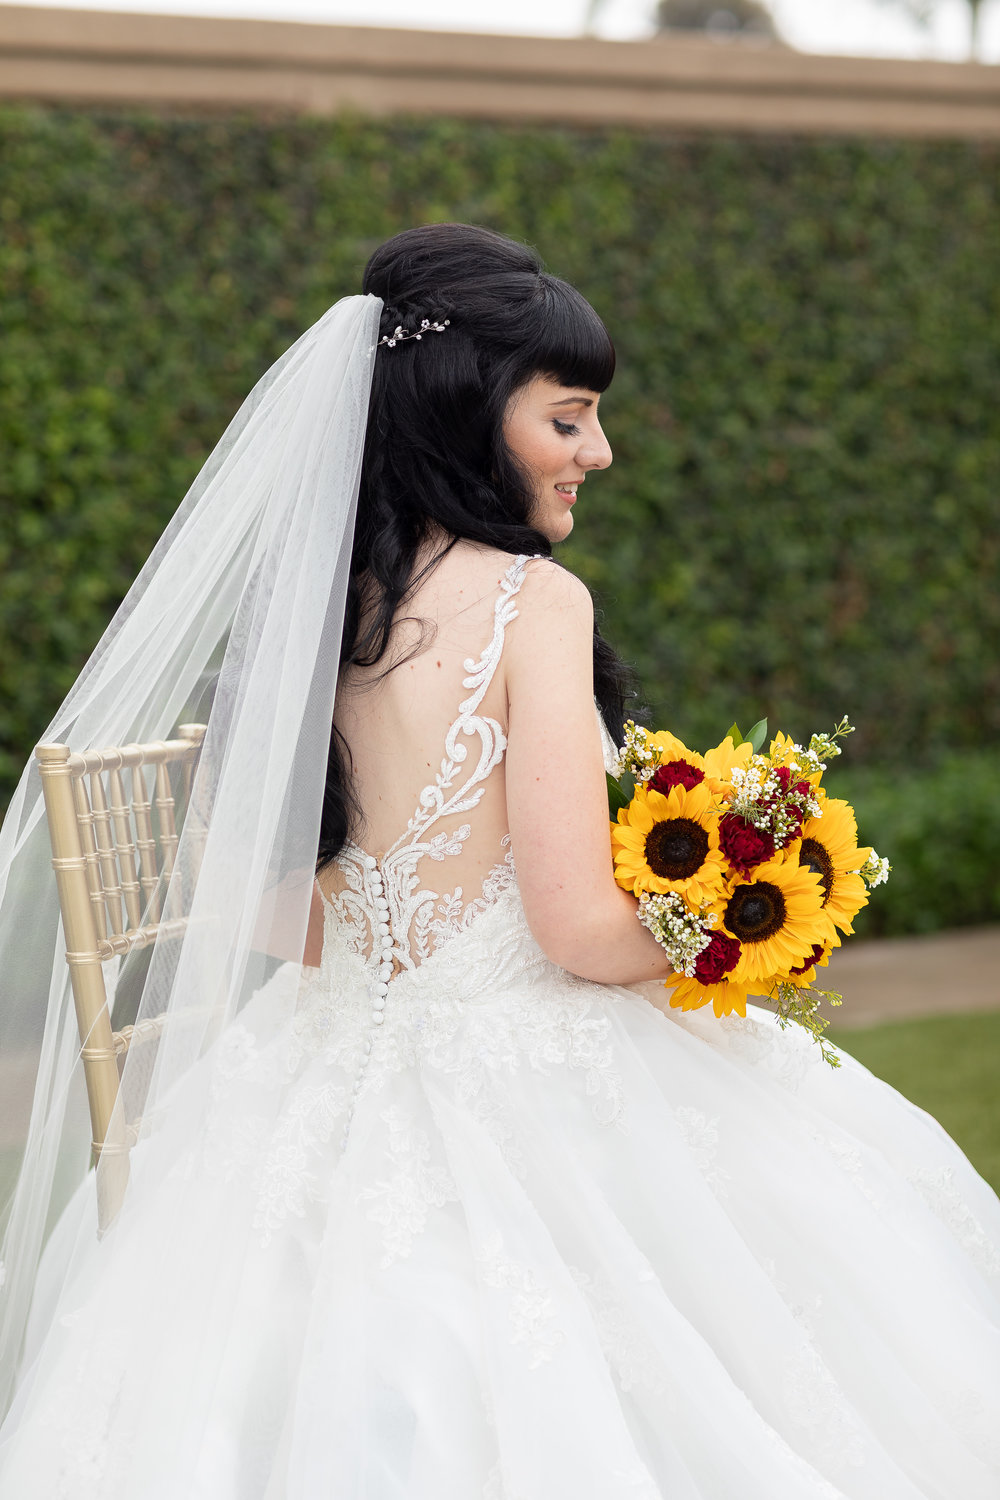 Photo of Gorgeous bride sitting in a chair in her wedding dress with a bouquet of sunflowers.jpg